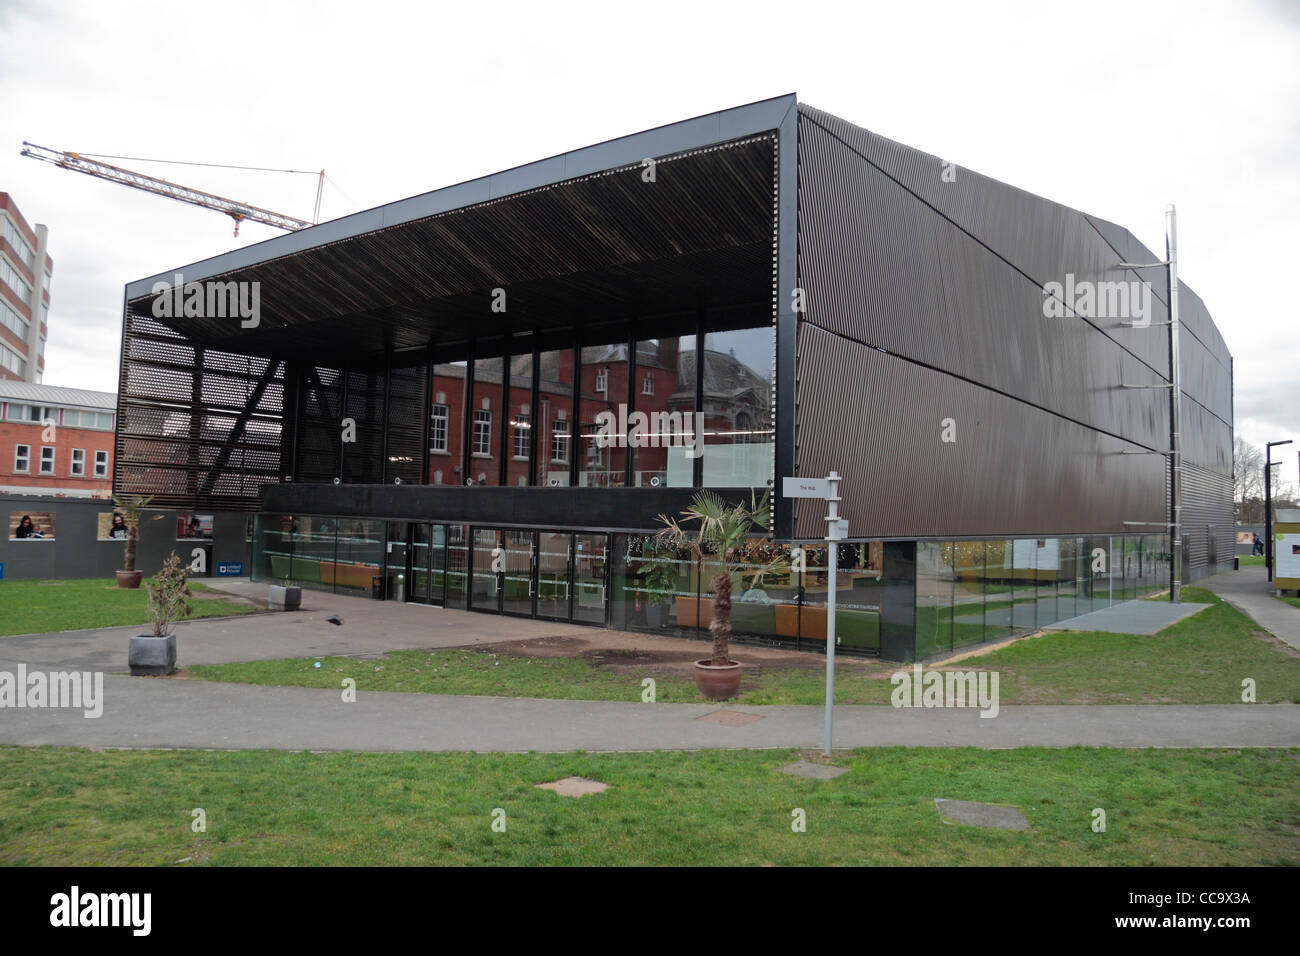 The Performance Building, part of the Bernie Grant Arts Centre, designed by David Adjaye, in Tottenham, London, - Stock Image